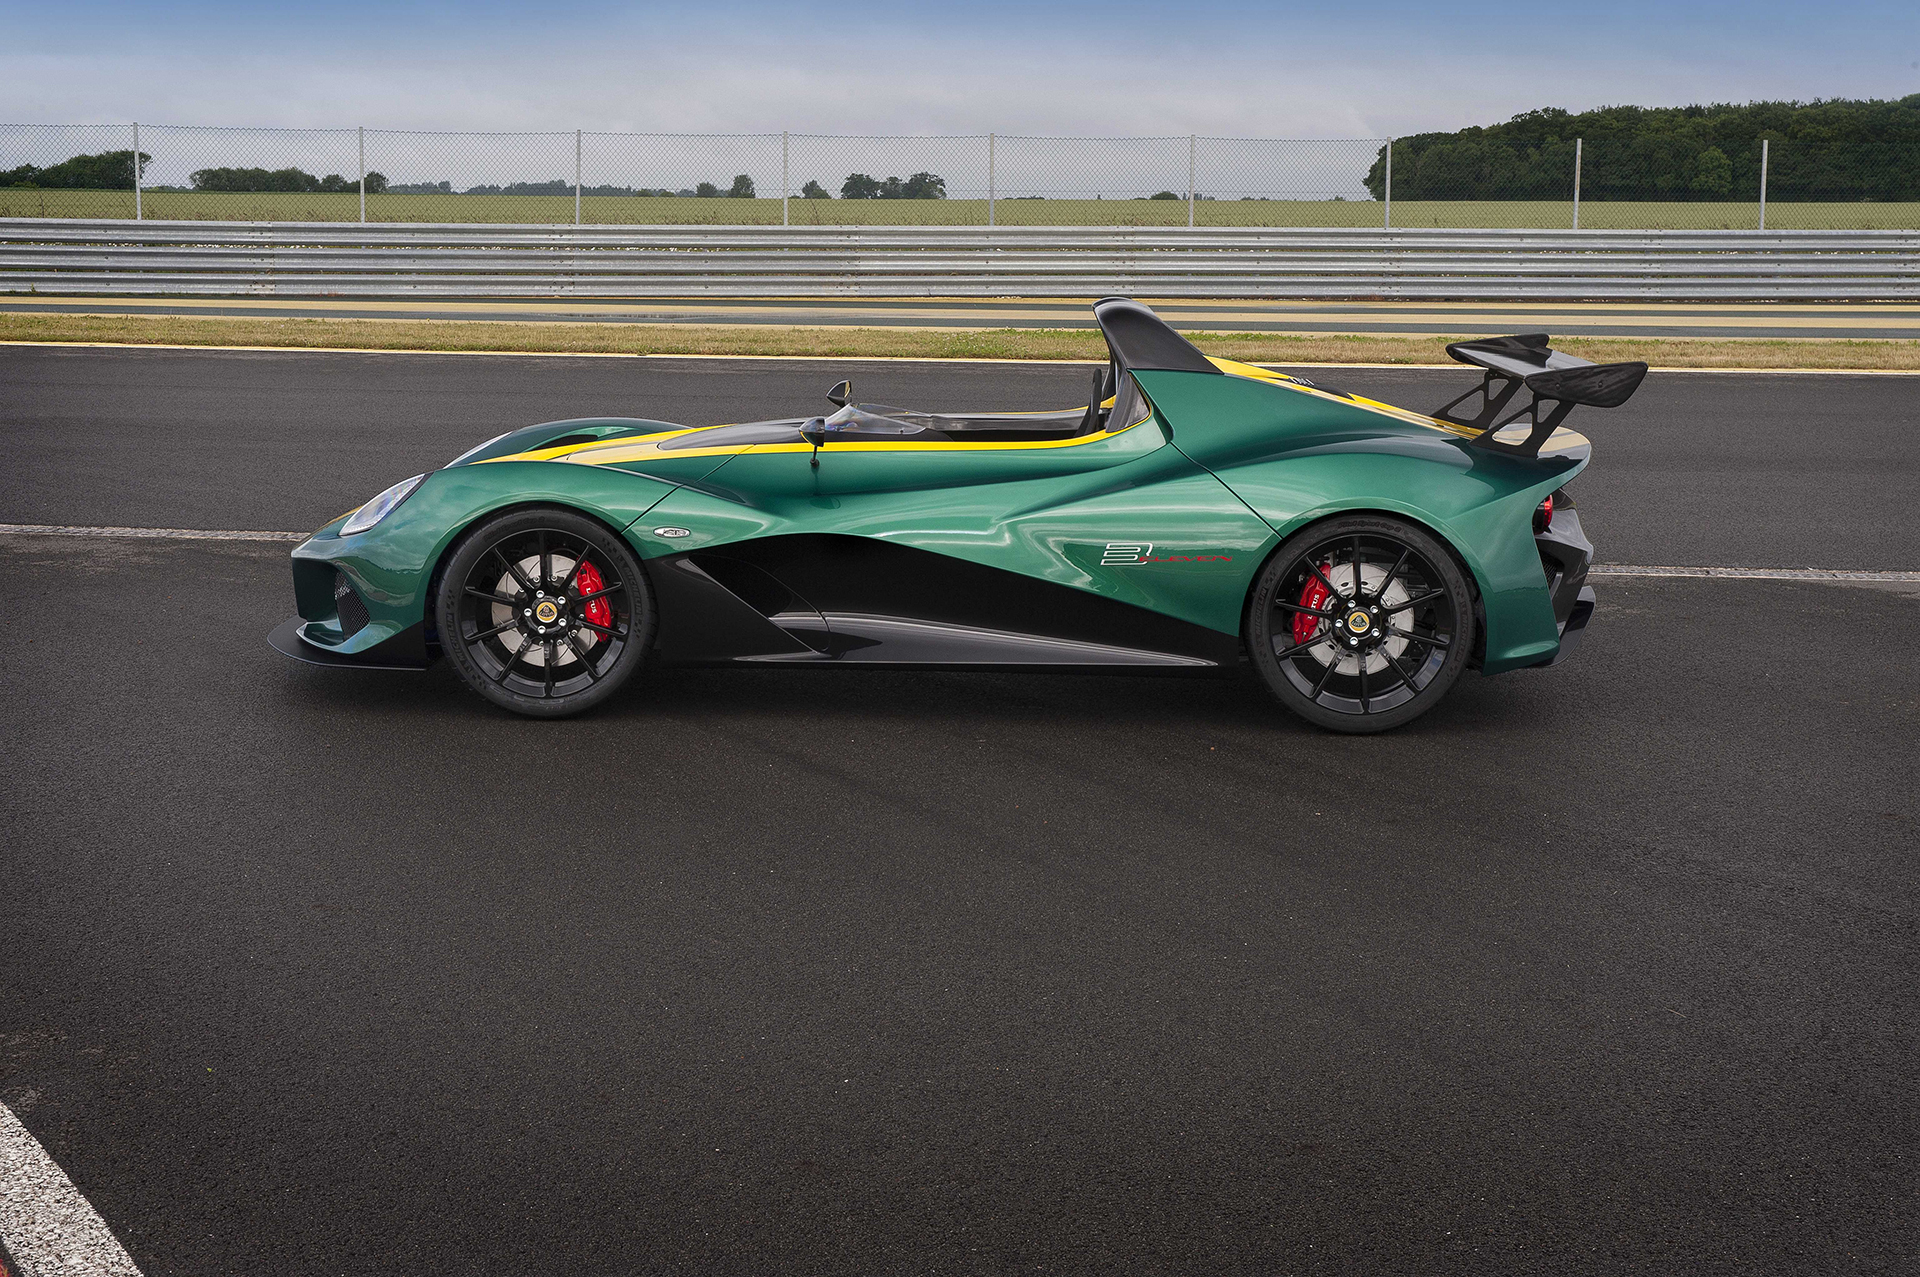 Lotus Cars 3-Eleven - profil / side-face